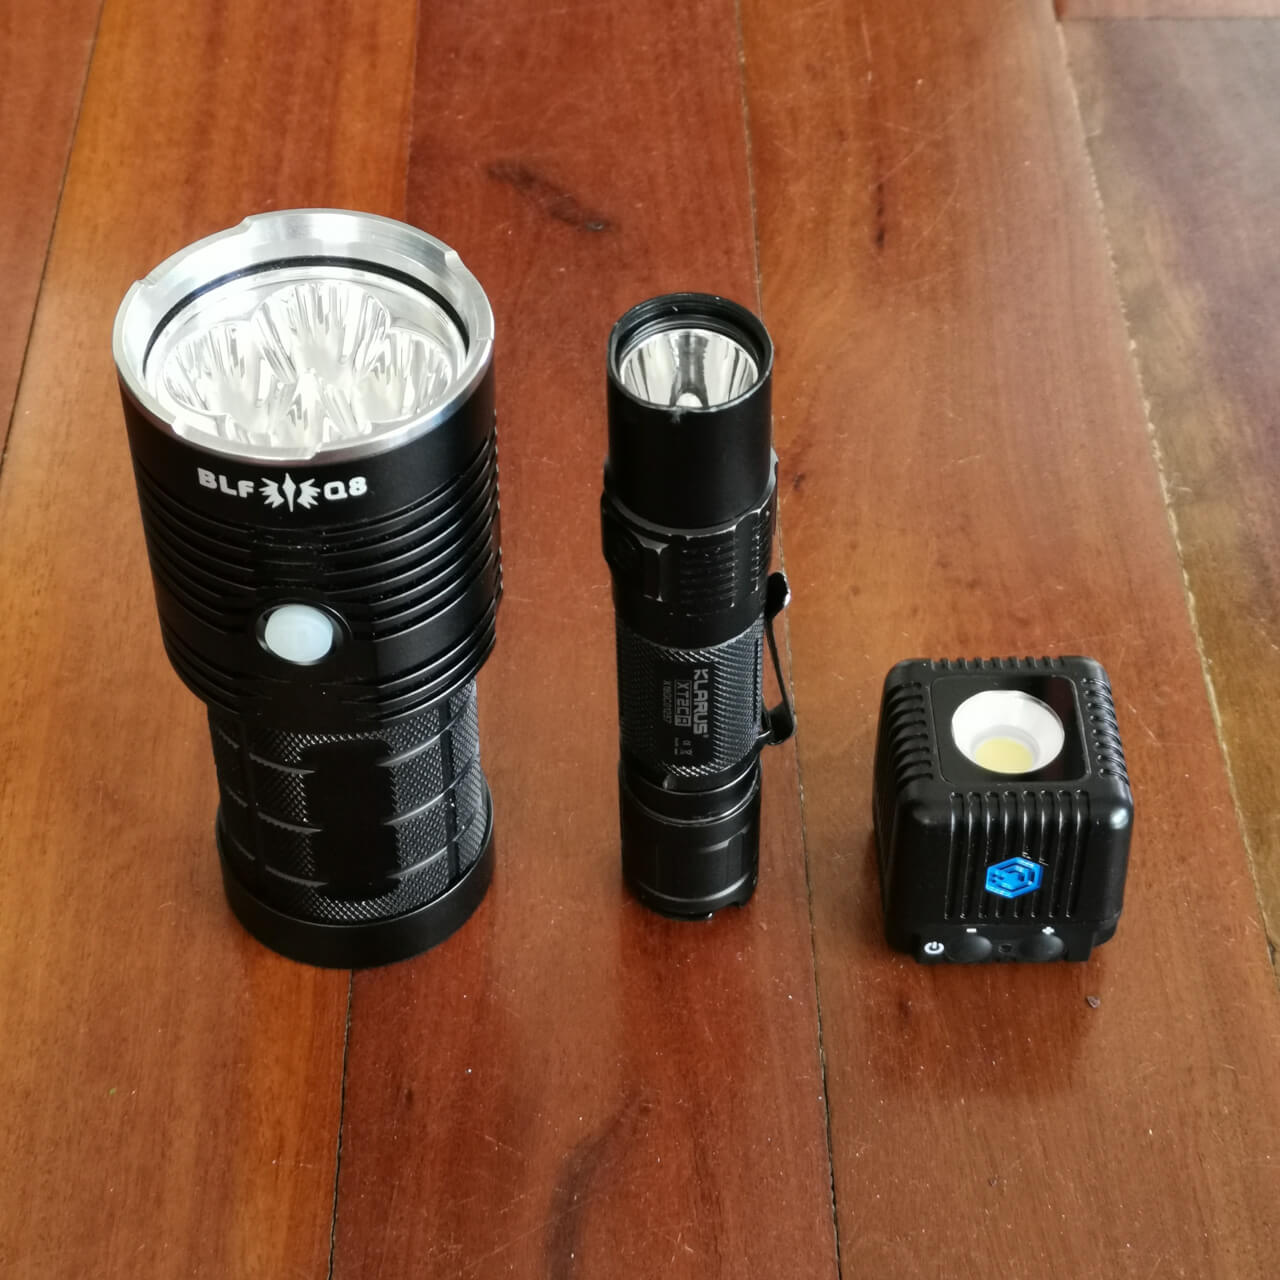 LumeCube 2.0 size compared to a 5,000lm Thorfire Q8 and 1,600lm Klarus XT2CR